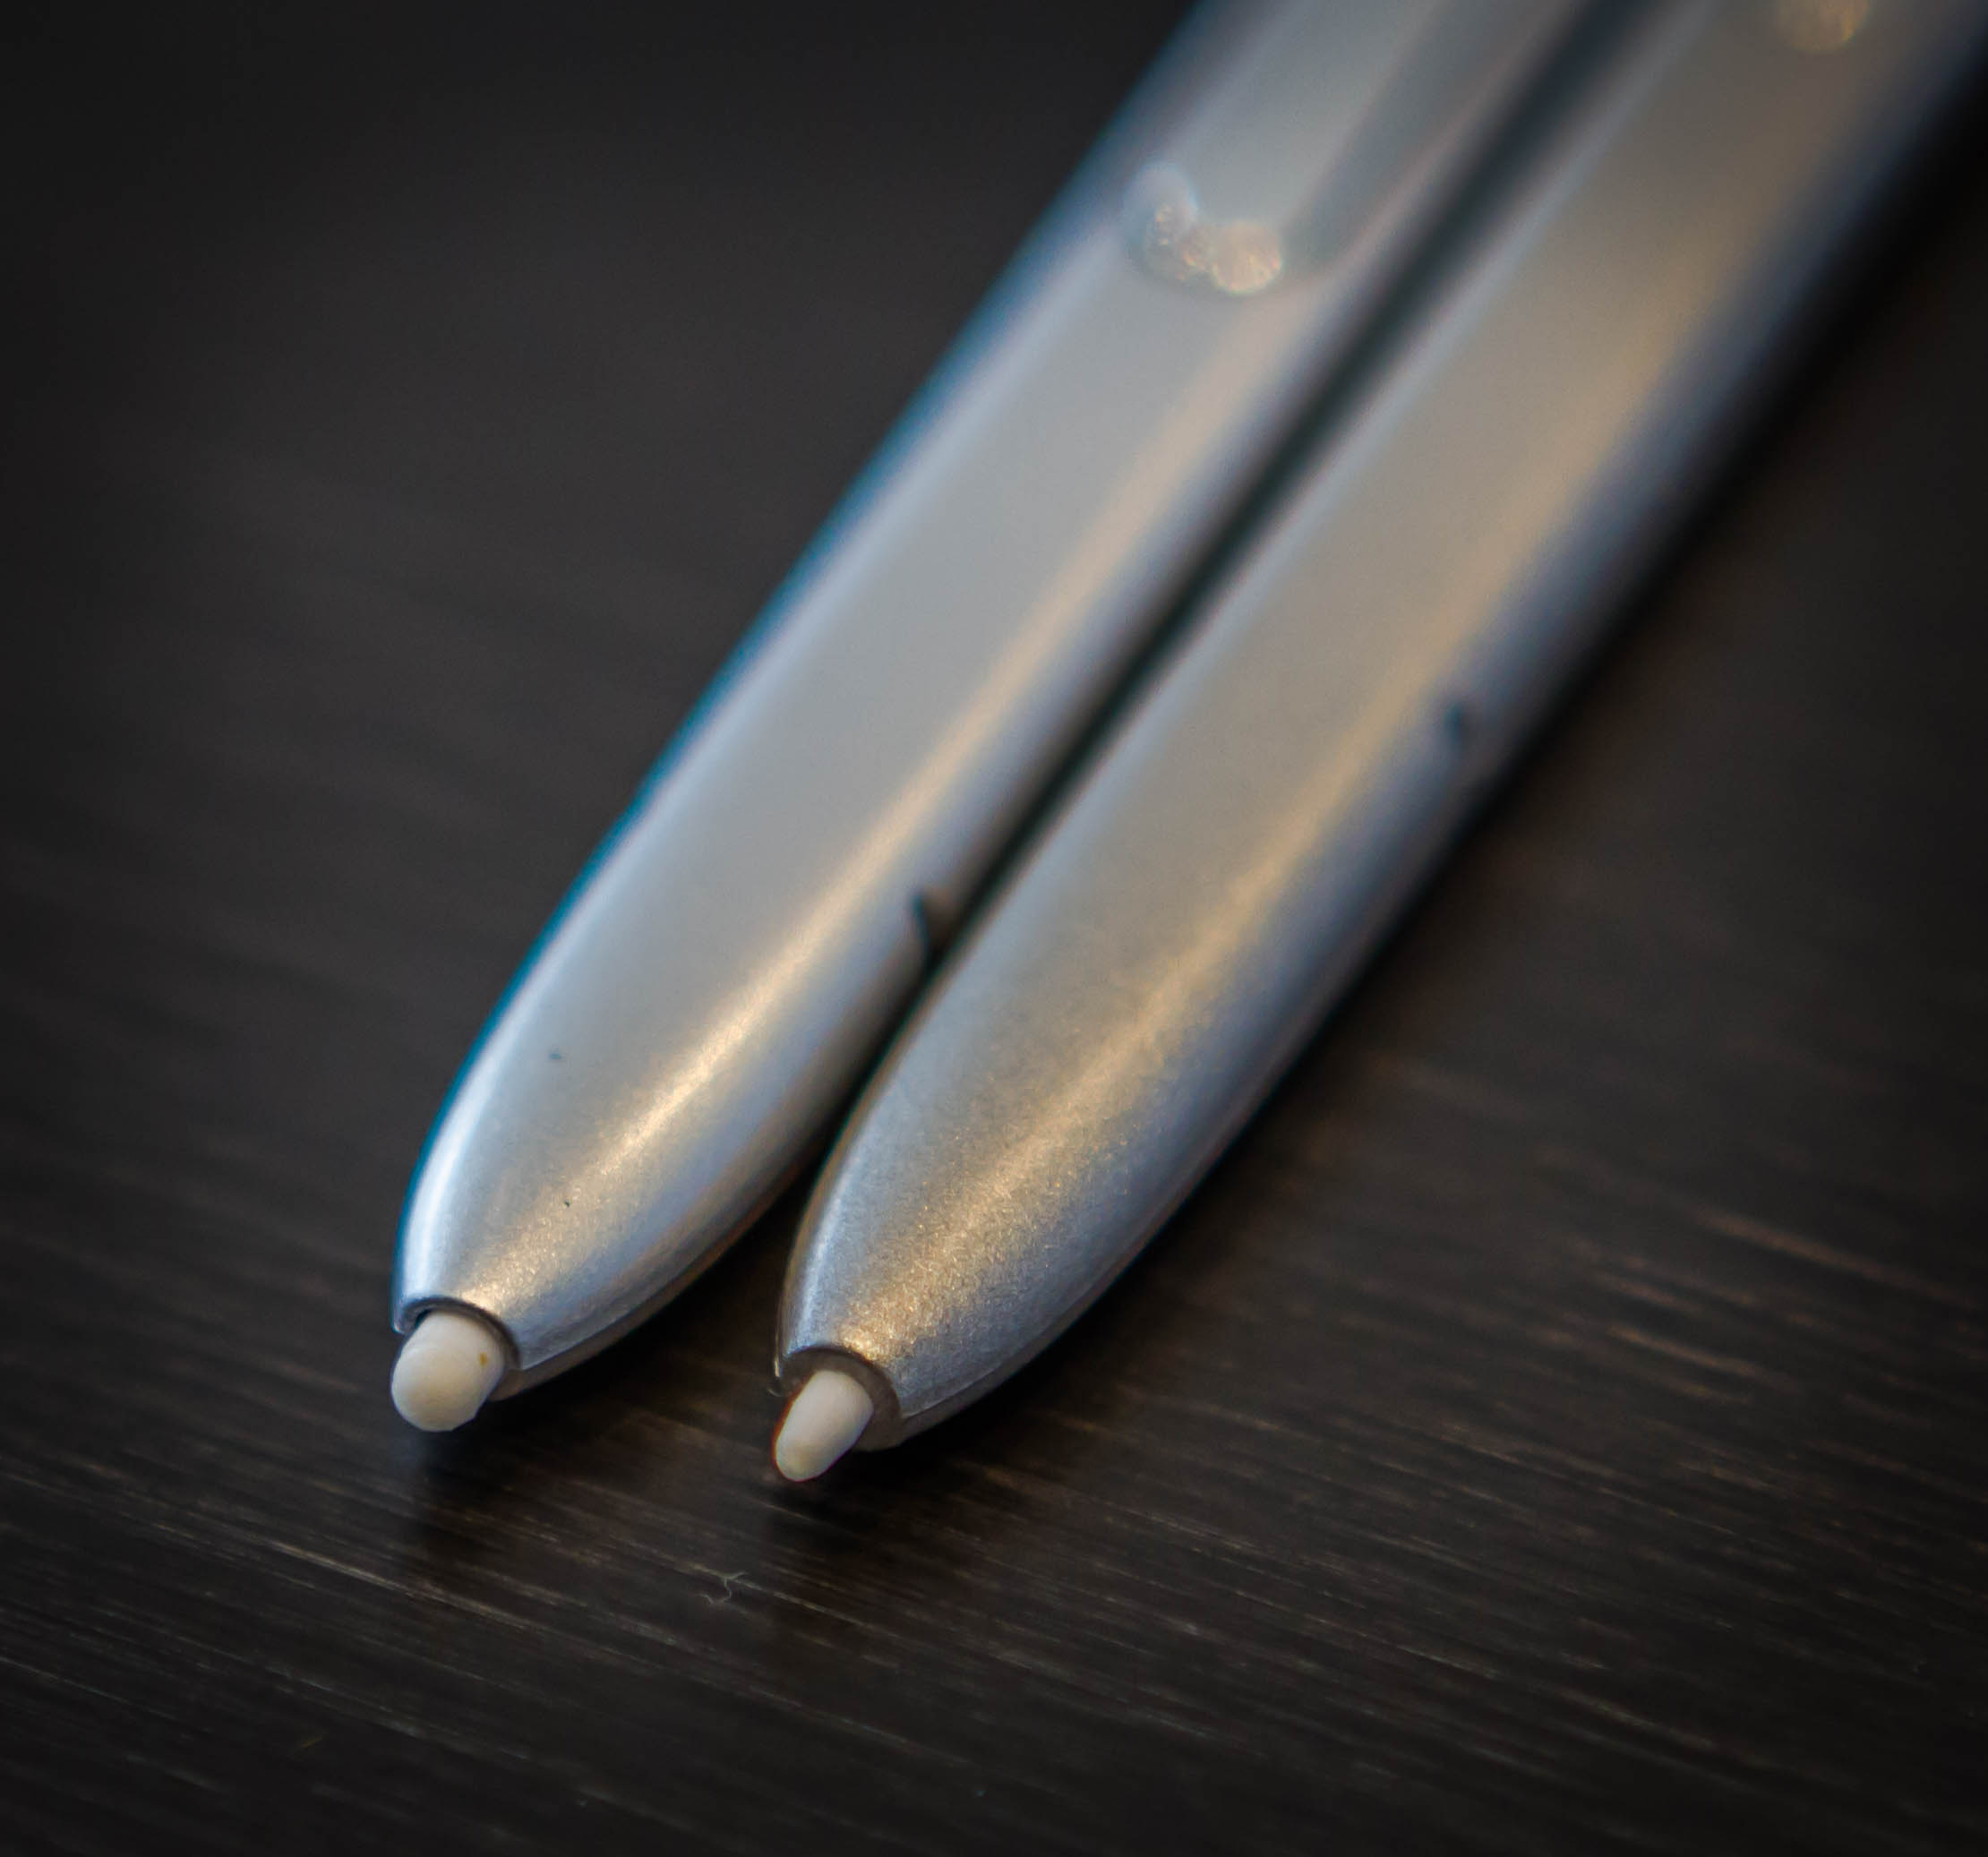 The Samsung Note7 stylus (right) compared to the Note5.